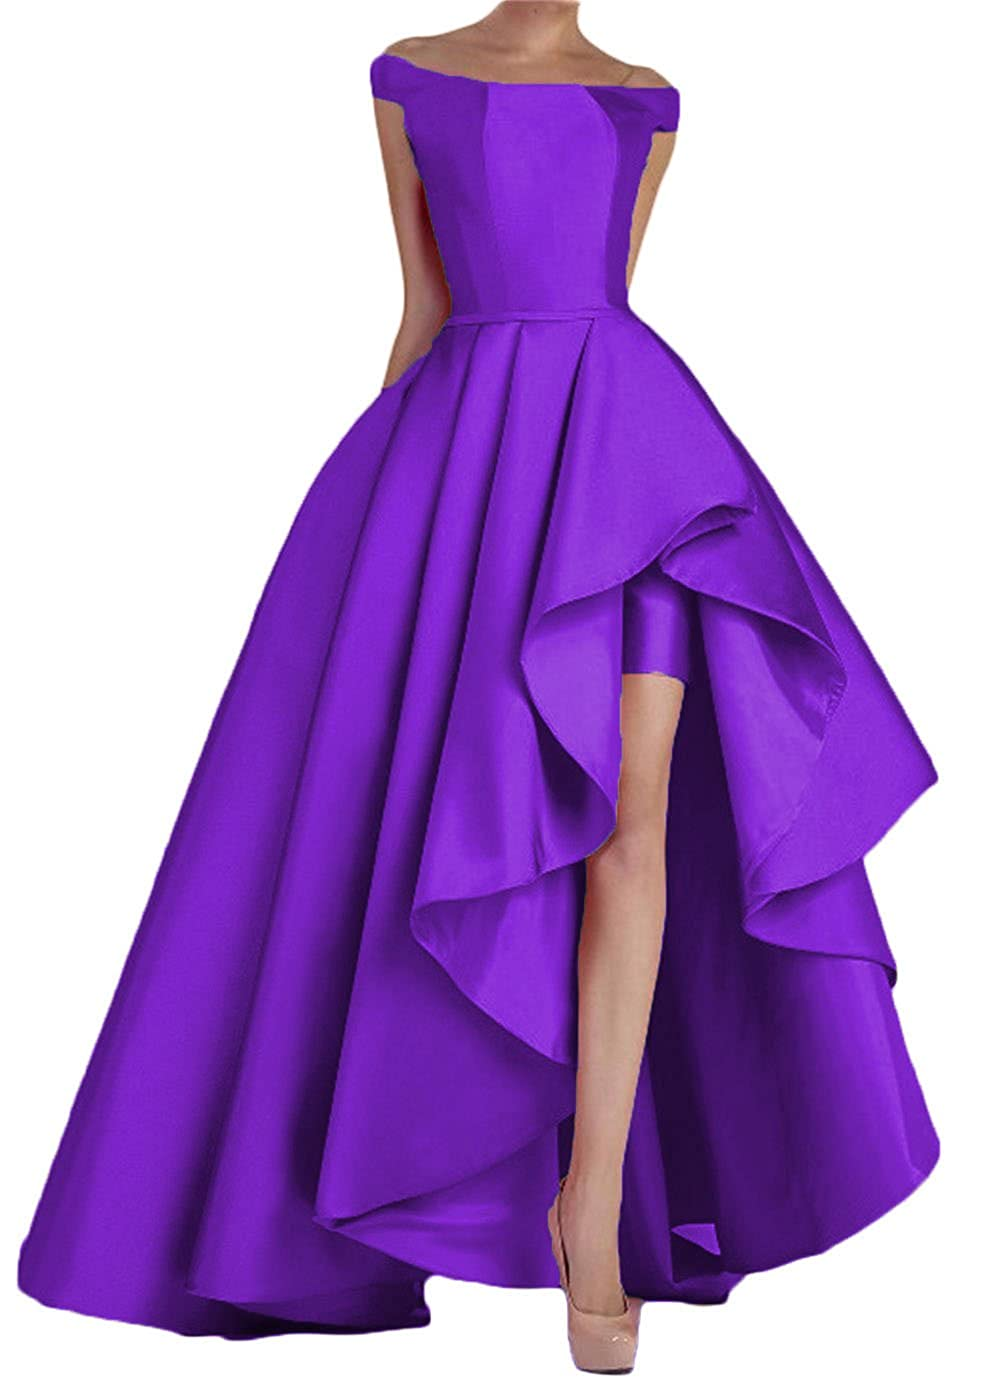 Purple Dydsz Women's Off Shoulder Long Evening Prom Dresses Plus Size Formal Gowns D22